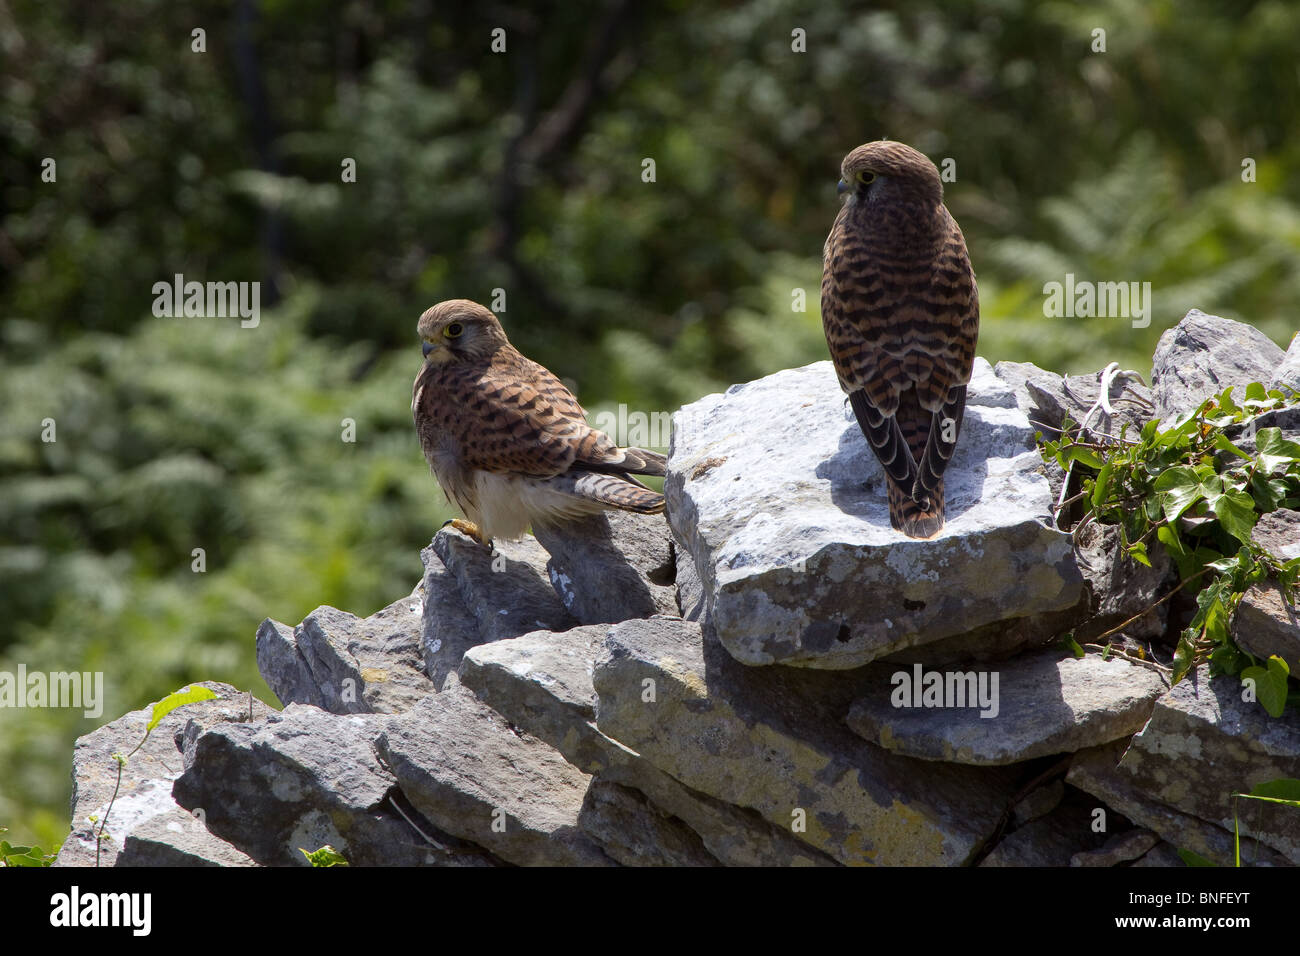 Pair of kestrels sitting on a dry stone wall. - Stock Image